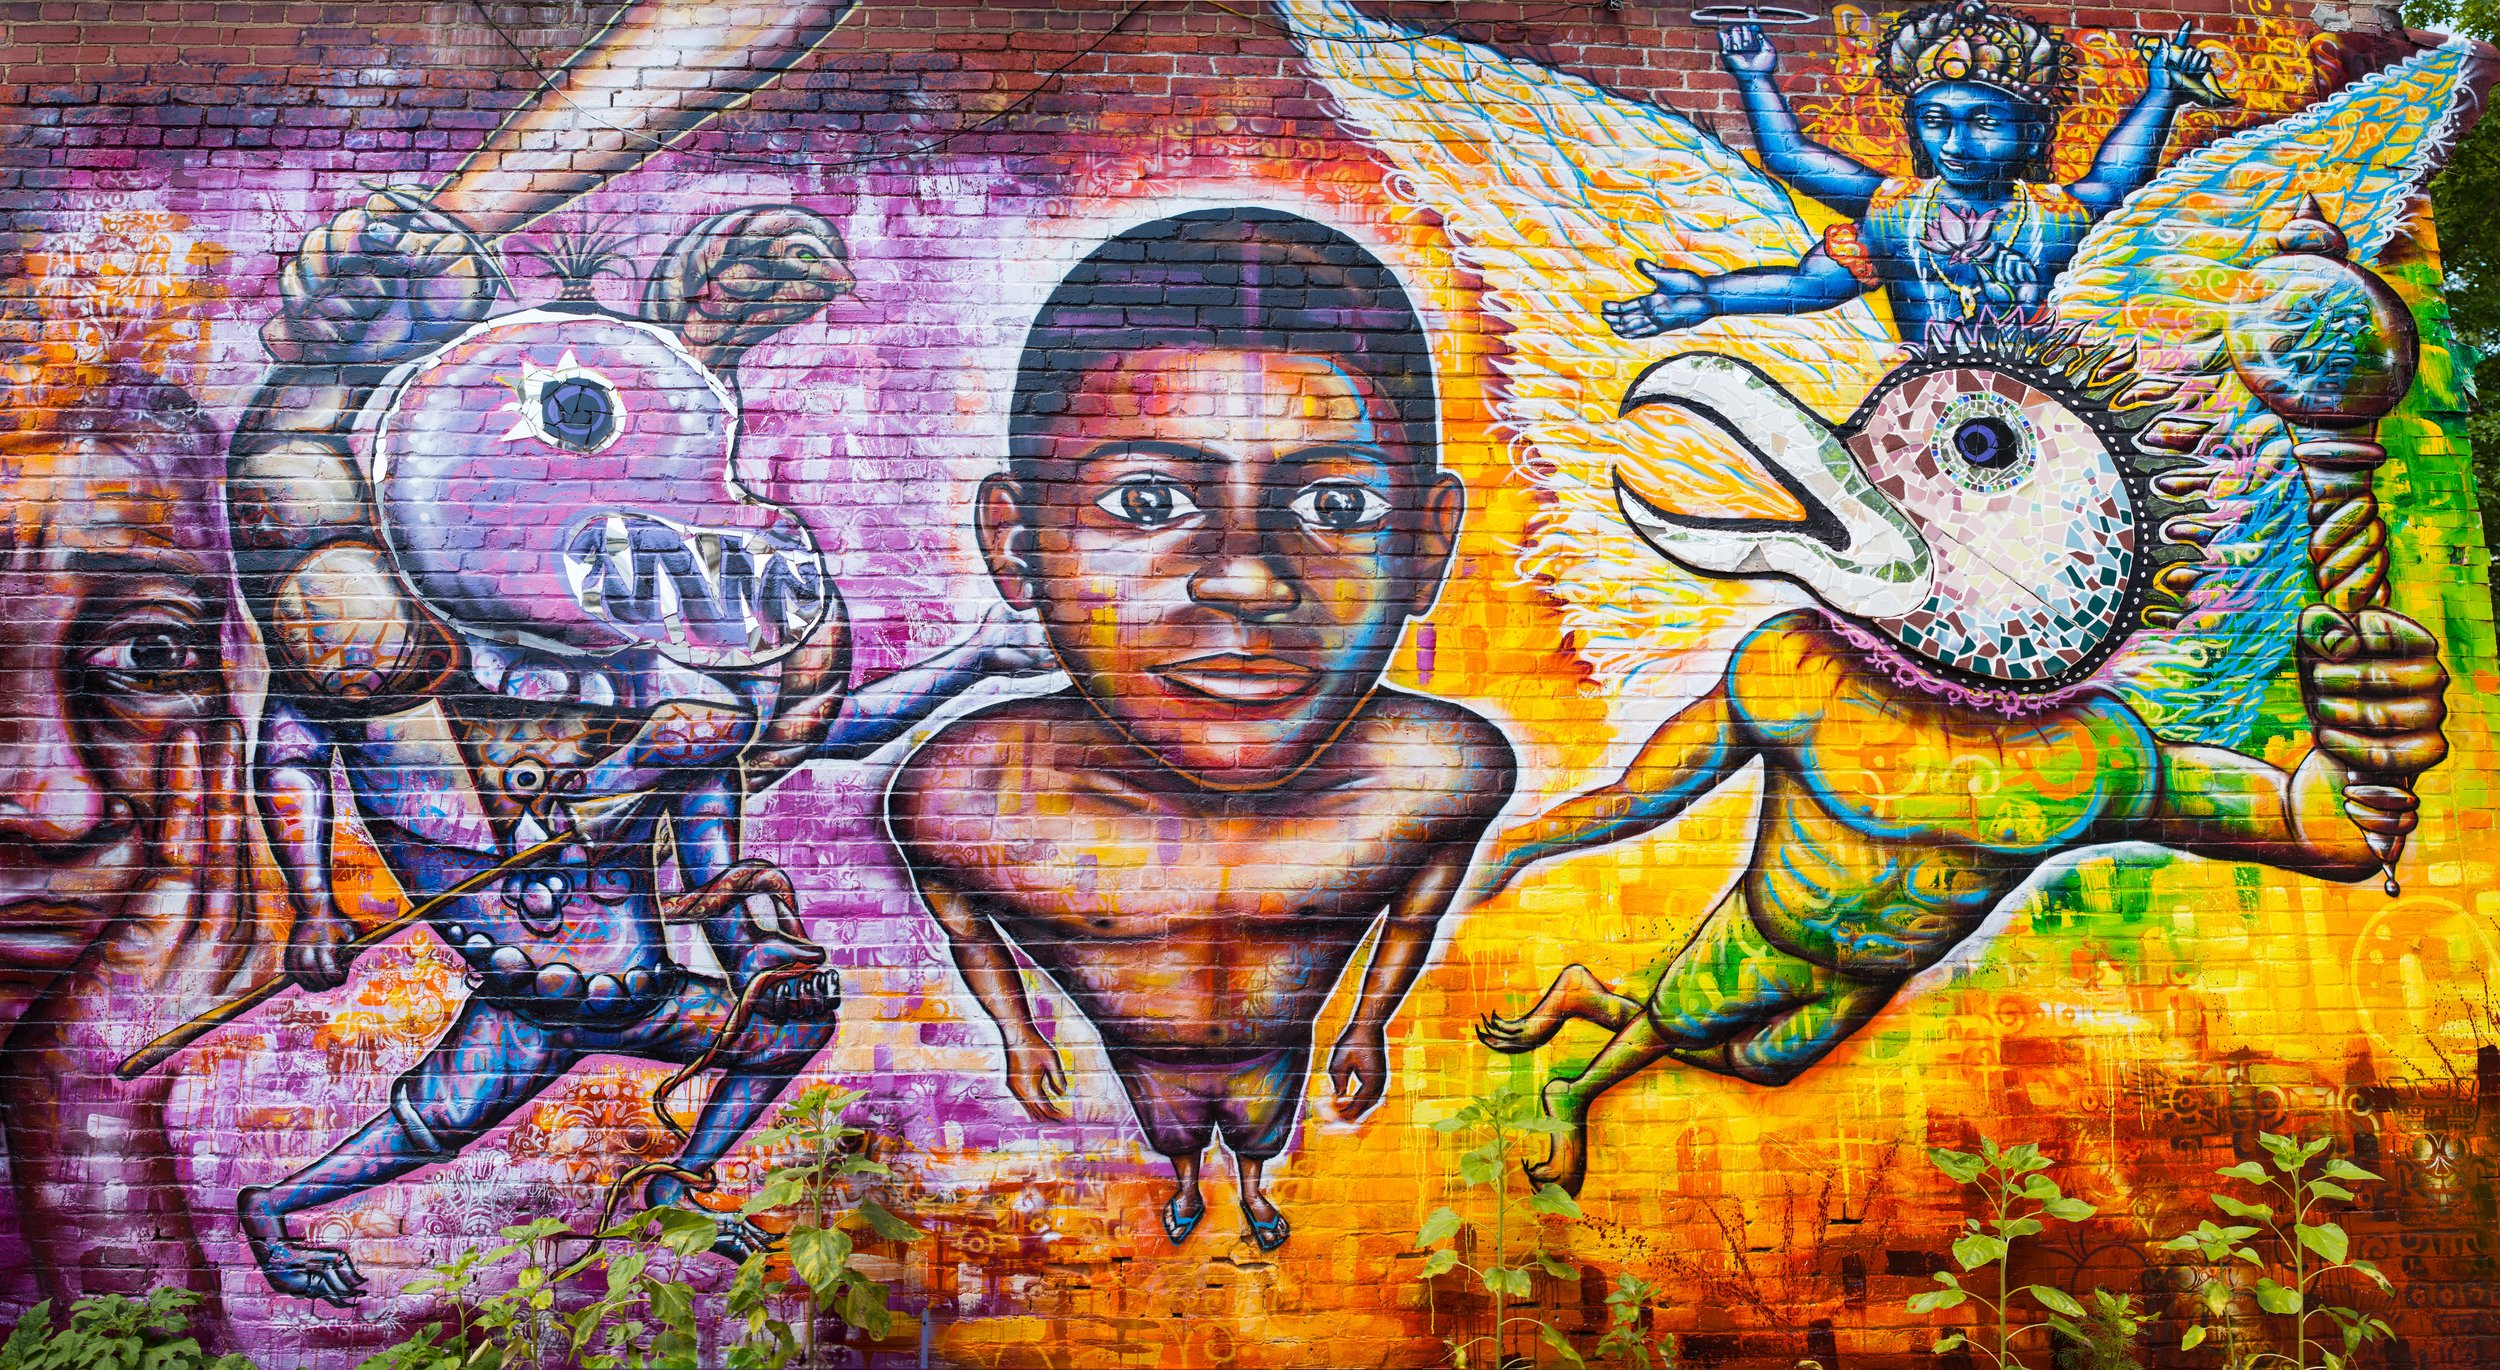 JB_Columbia Heights Mural.jpg